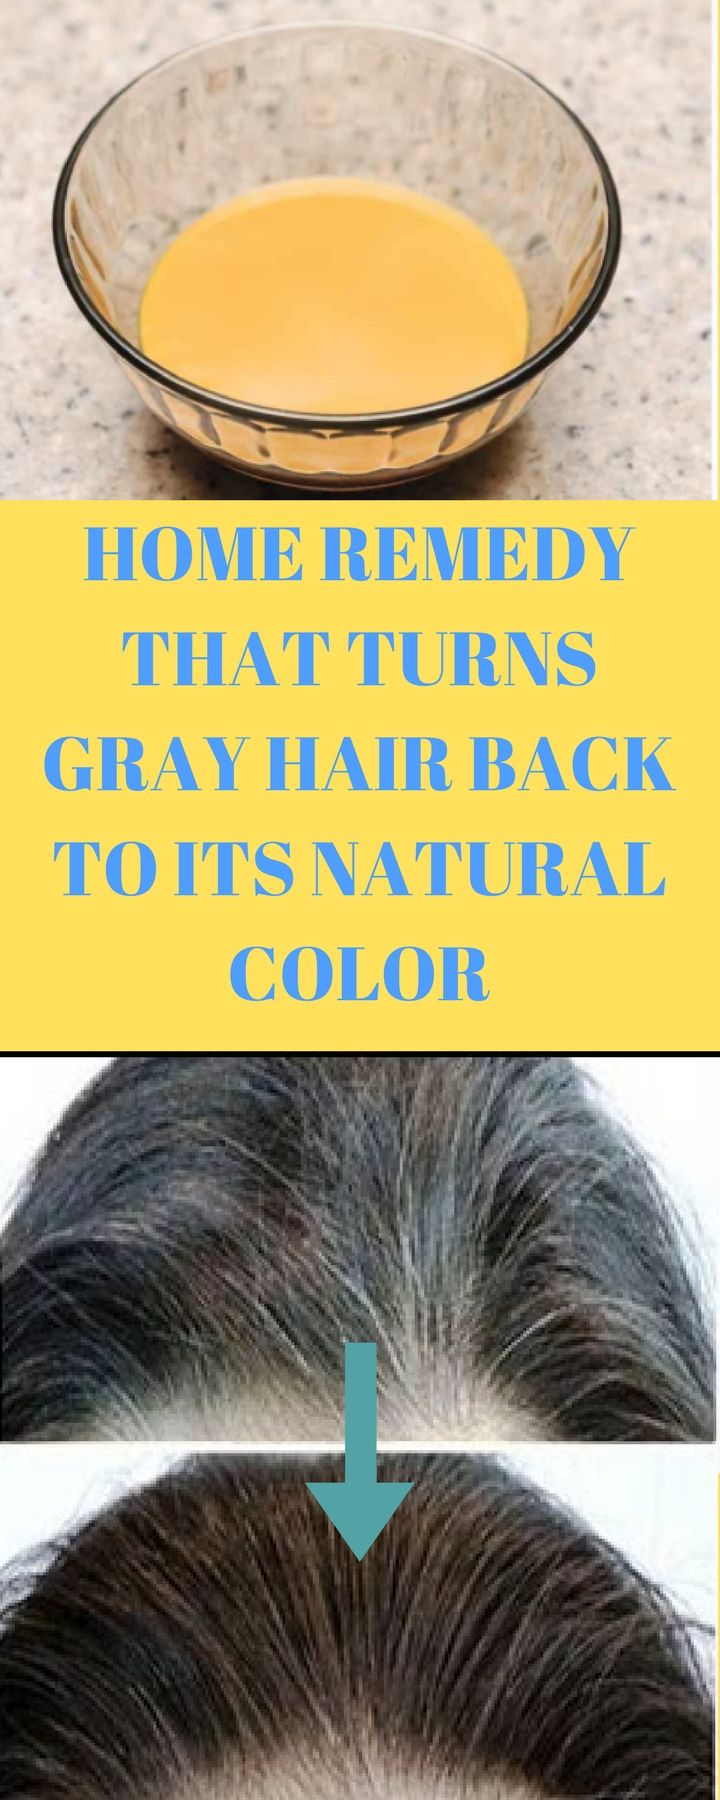 HOME REMEDY: COCONUT OIL AND LEMON MIXTURE WILL TURNS GRAY HAIR BACK ...